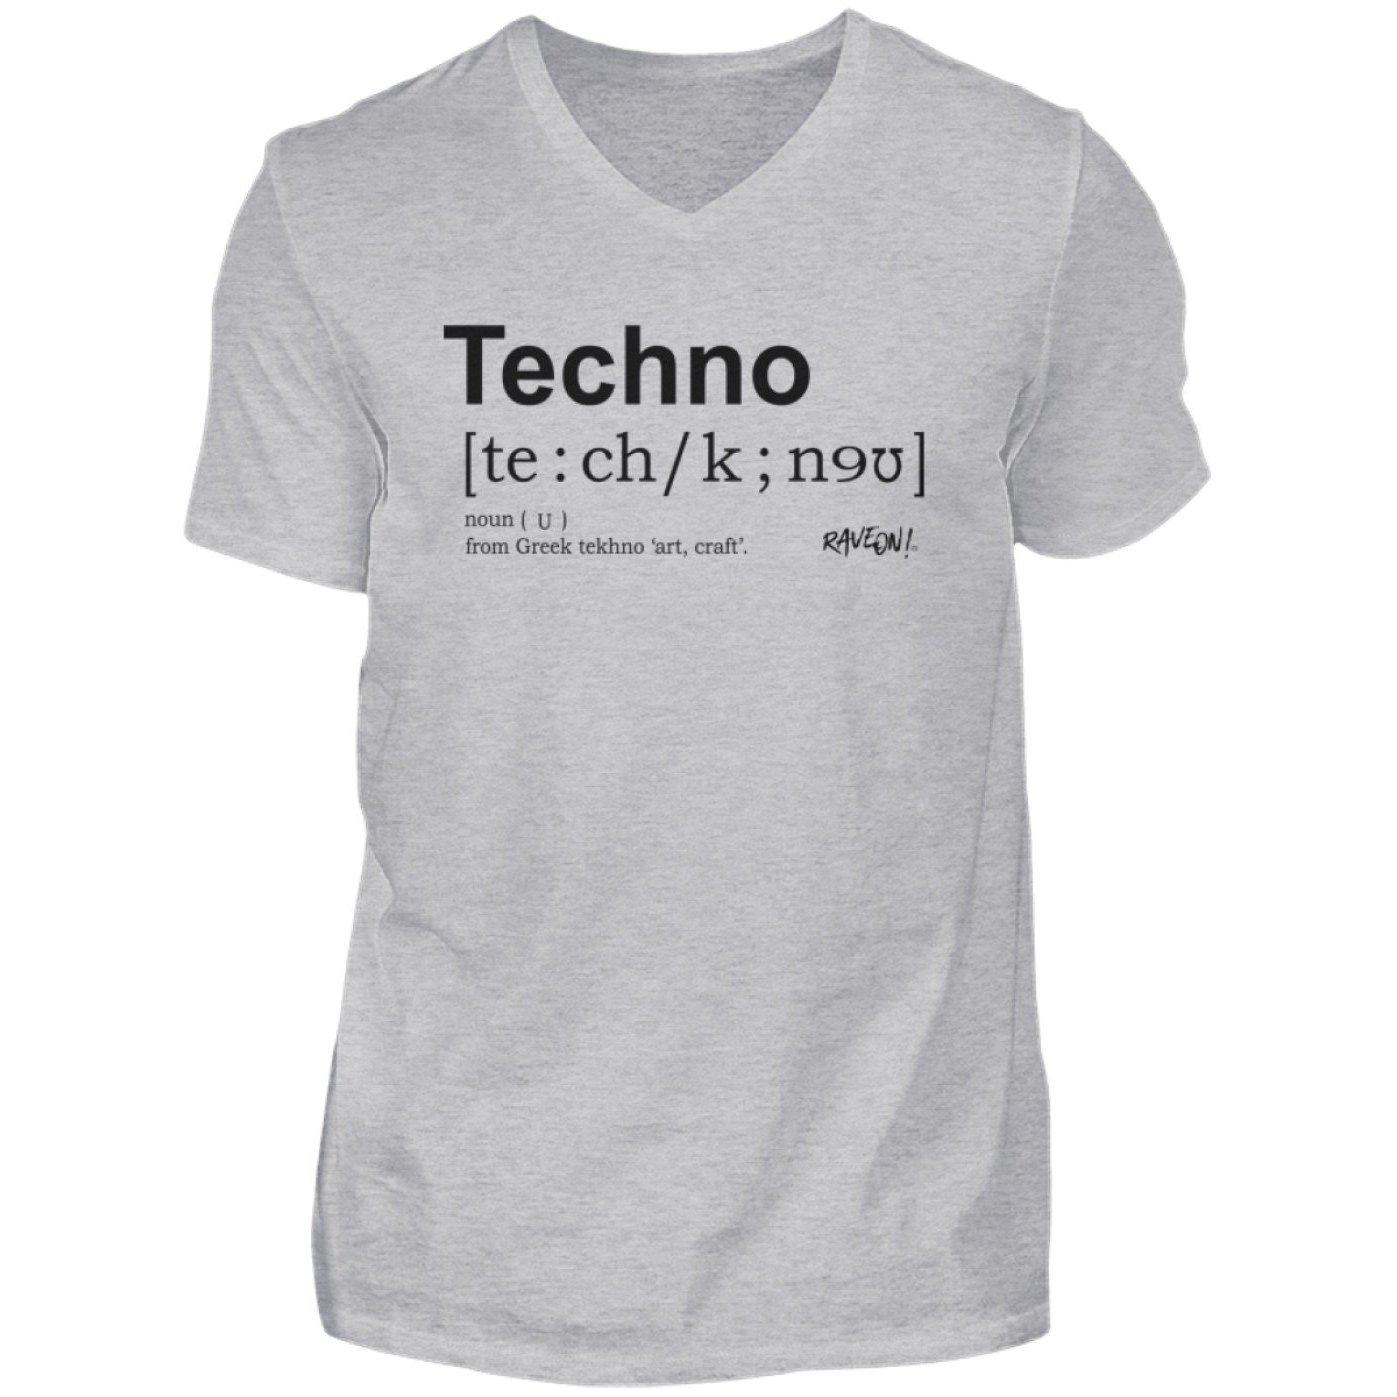 Techno Dictionary - Rave On!® Shirt - Herren V-Neck Shirt V-Neck Herrenshirt Heather Grey / S - Rave On!® der Club & Techno Szene Shop für Coole Junge Mode Streetwear Style & Fashion Outfits + Sexy Festival 420 Stuff